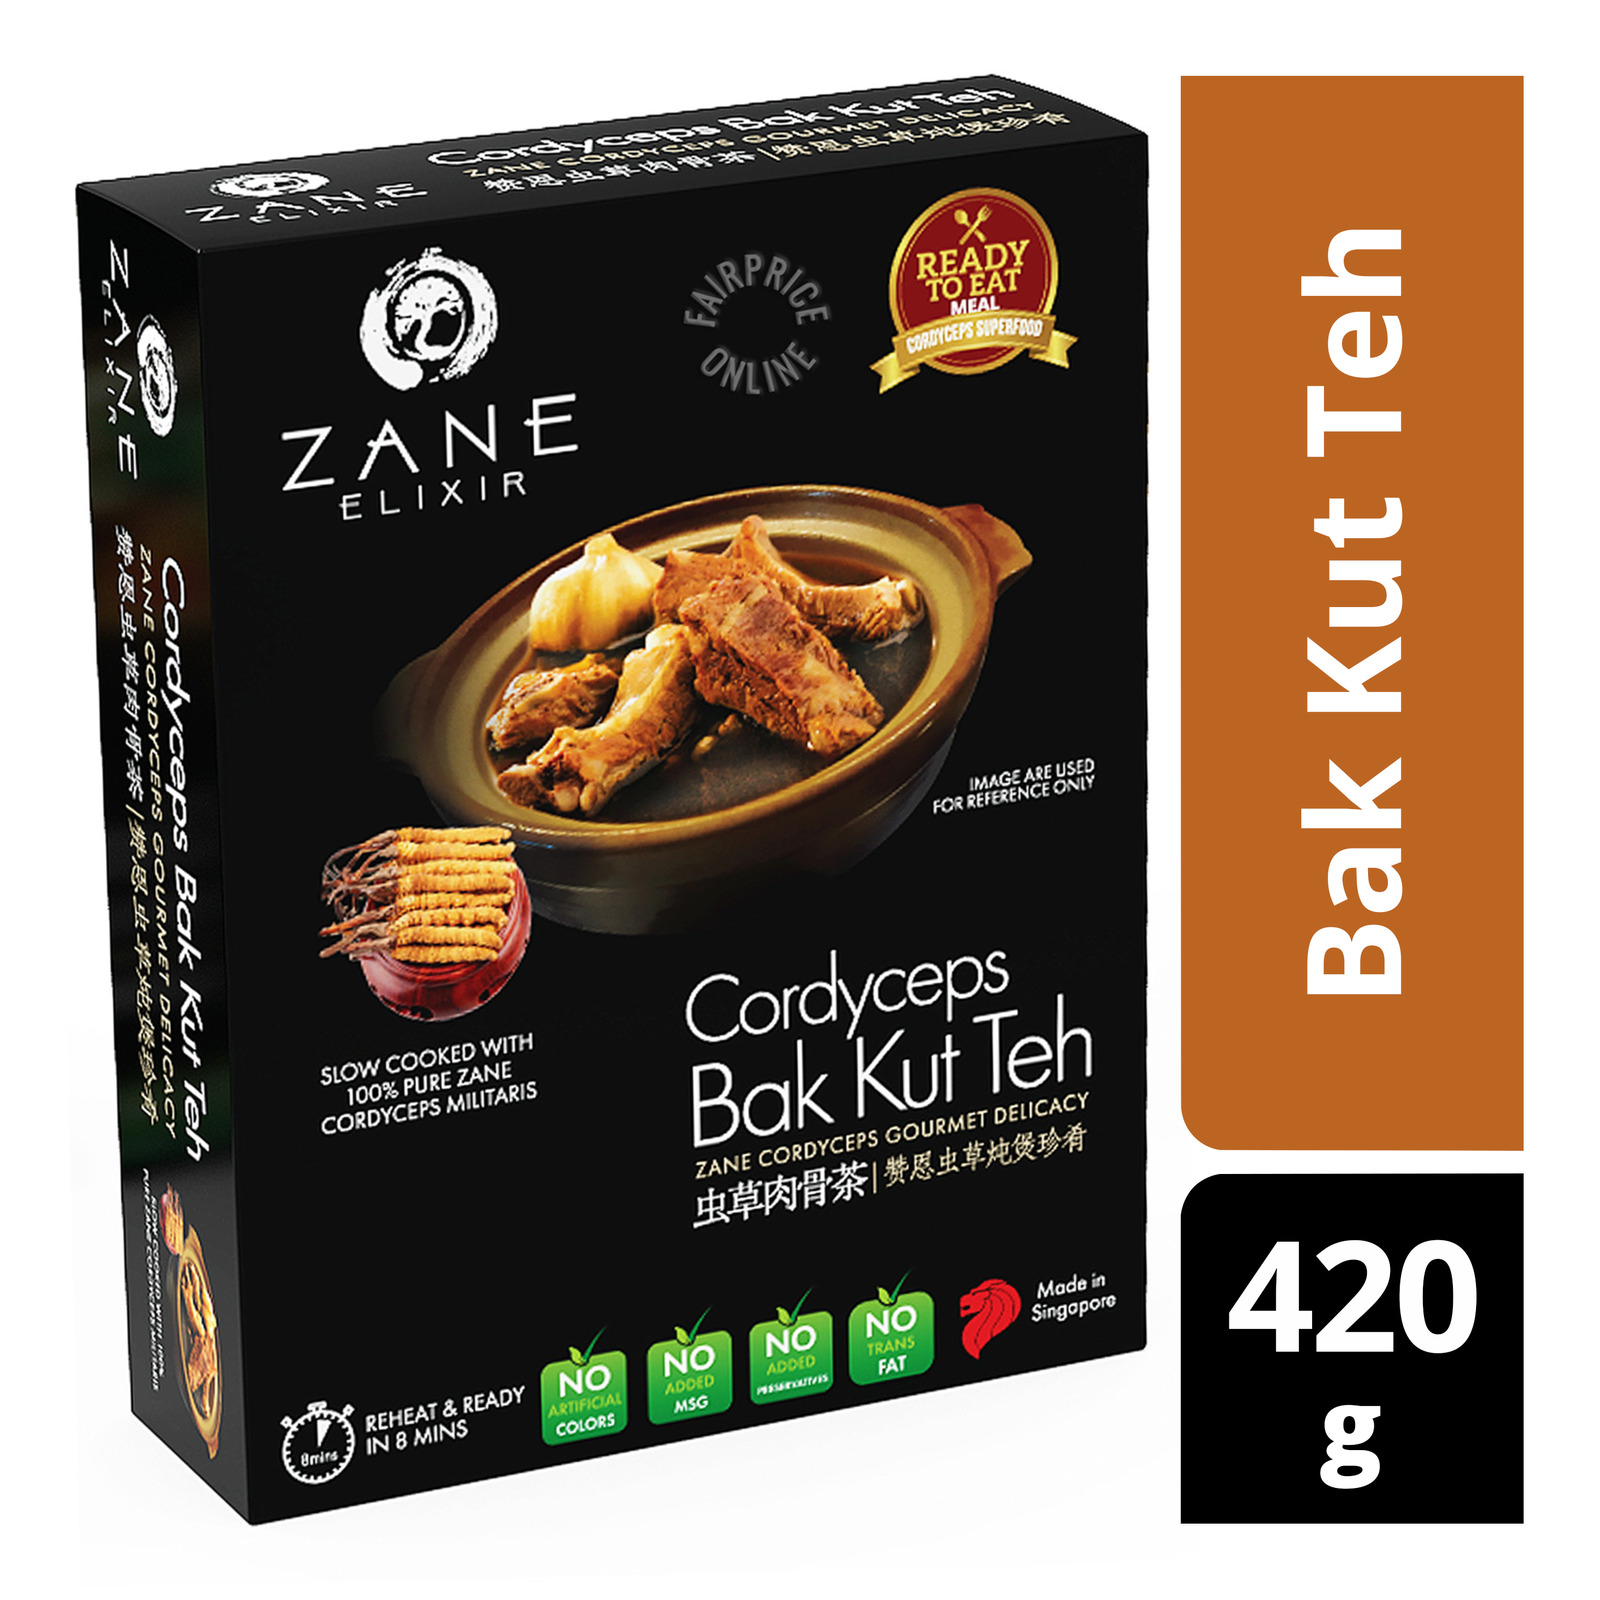 Zane Elixir Cordyceps Ready to Eat Meal - Bak Kut Teh